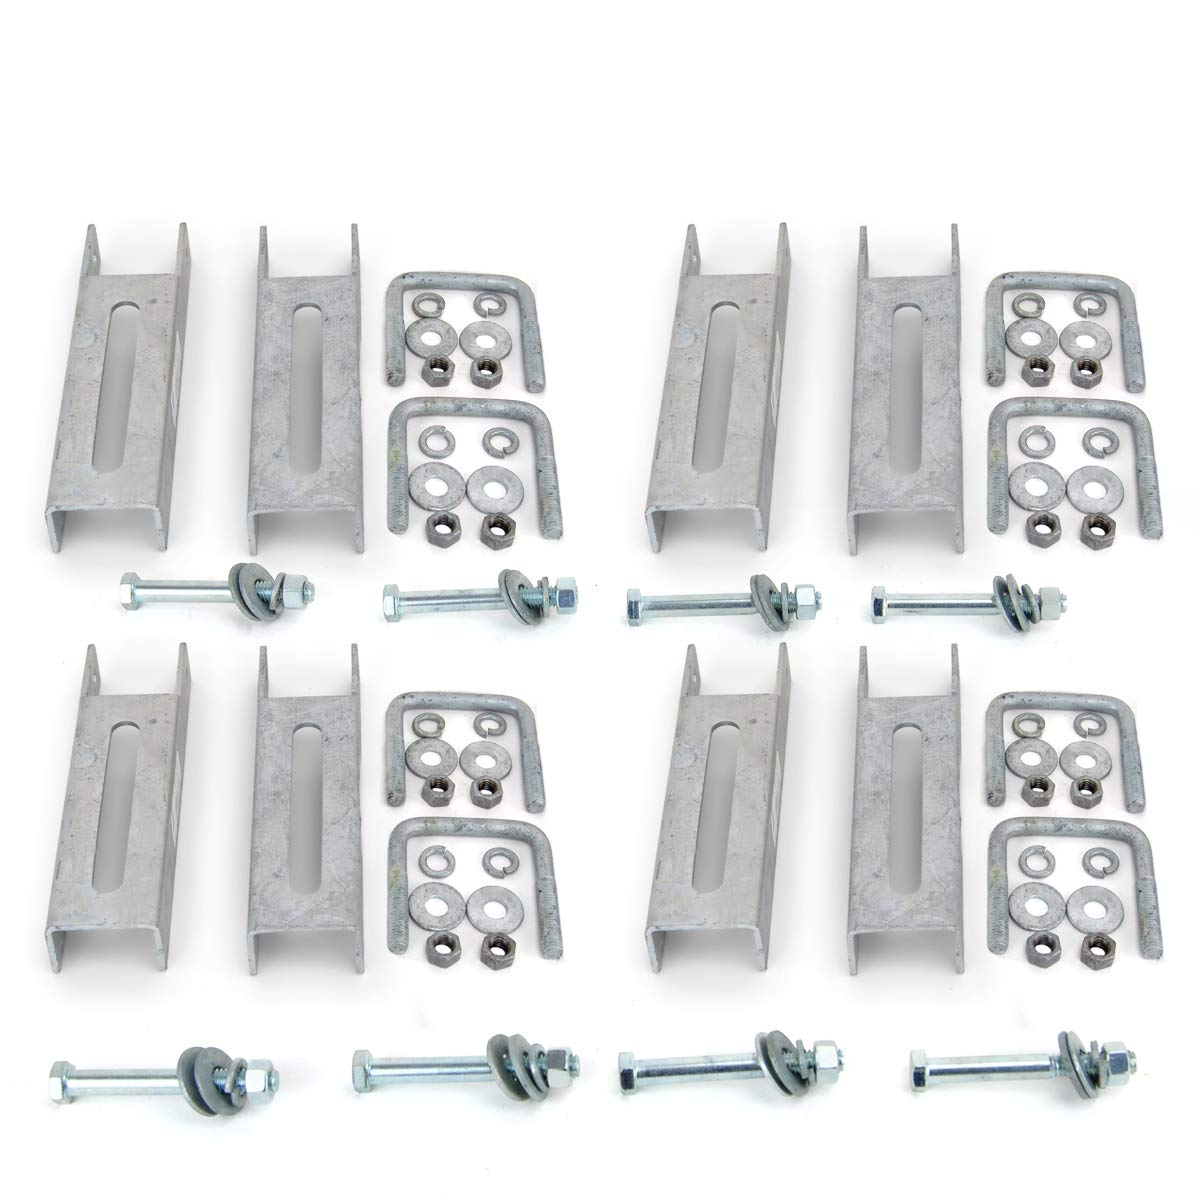 Sturdy Built (8) 8'' Galvanized Vertical Bunk Bracket Kit for 2x3 Boat Trailer Cross Members by Sturdy Built